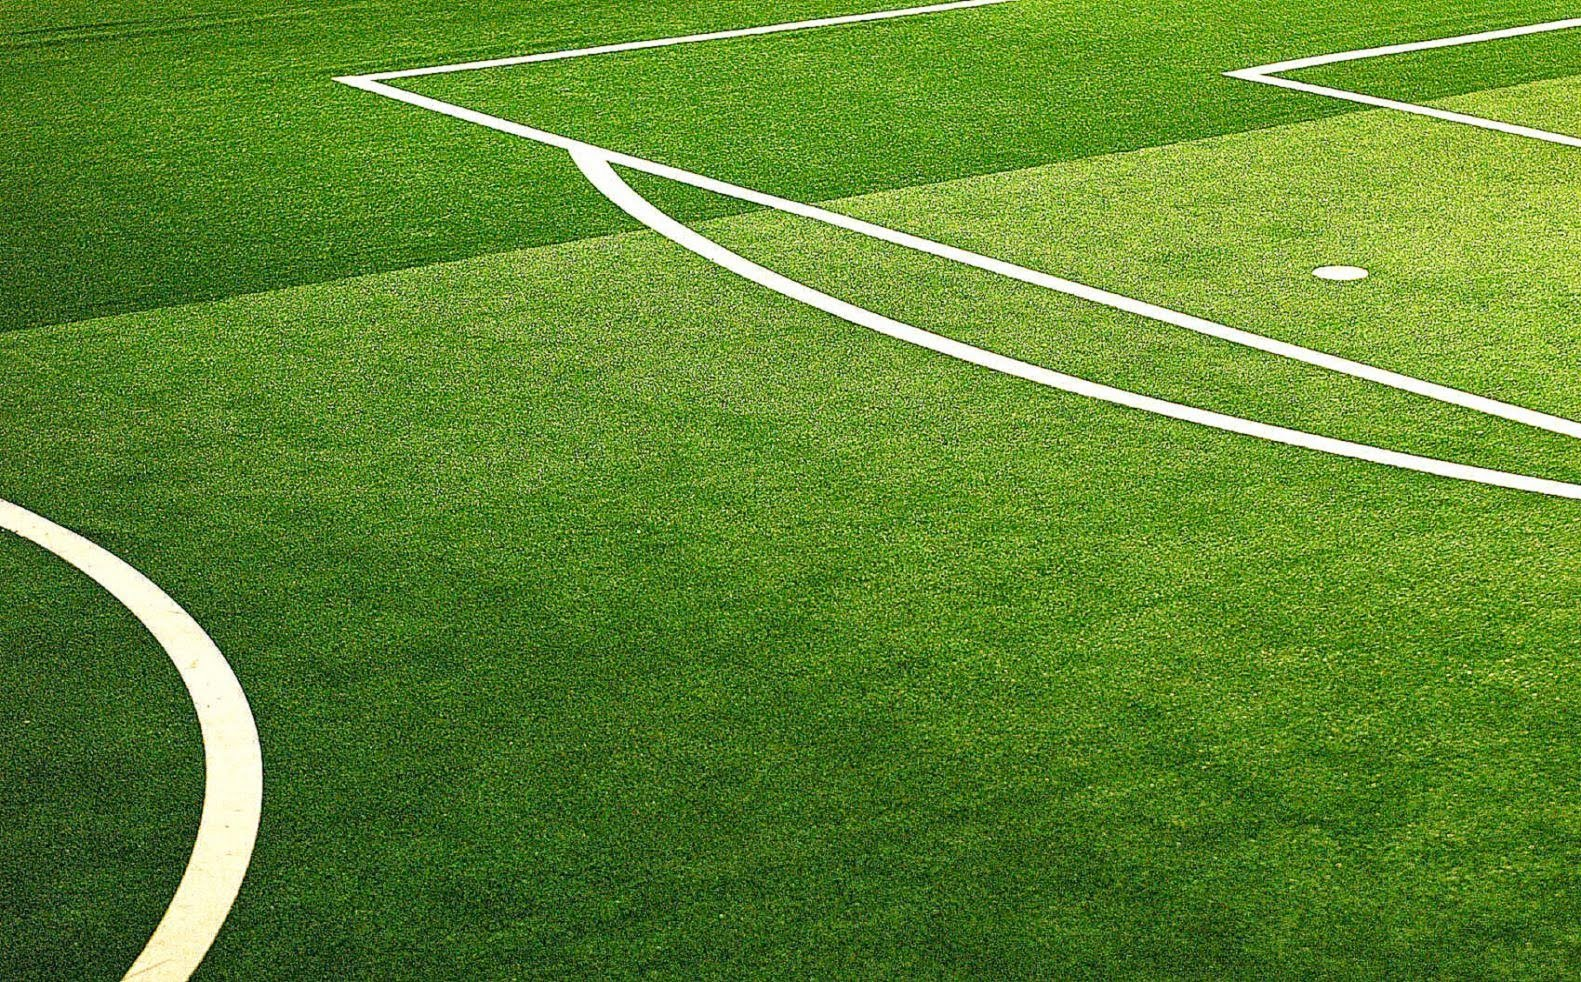 Soccer Field Wallpaper Hd 29323 Hd Wallpapers in Football Tels 1581x982